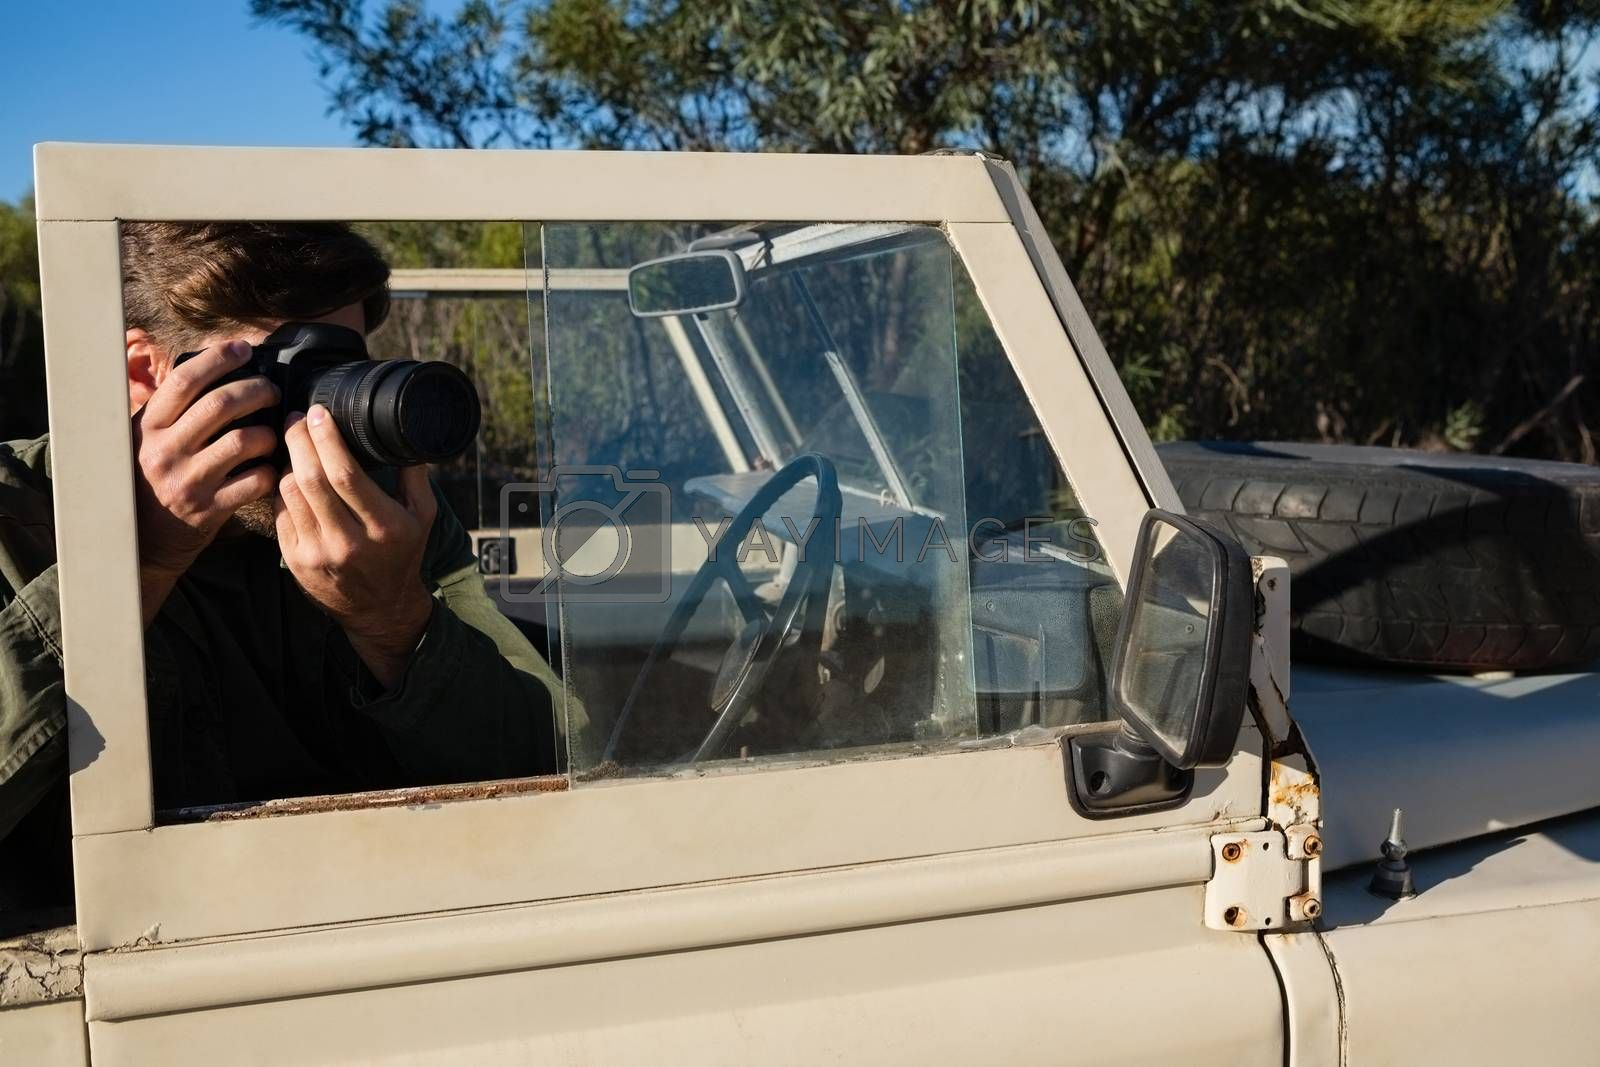 Man photographing while sitting in off road vehicle by Wavebreakmedia